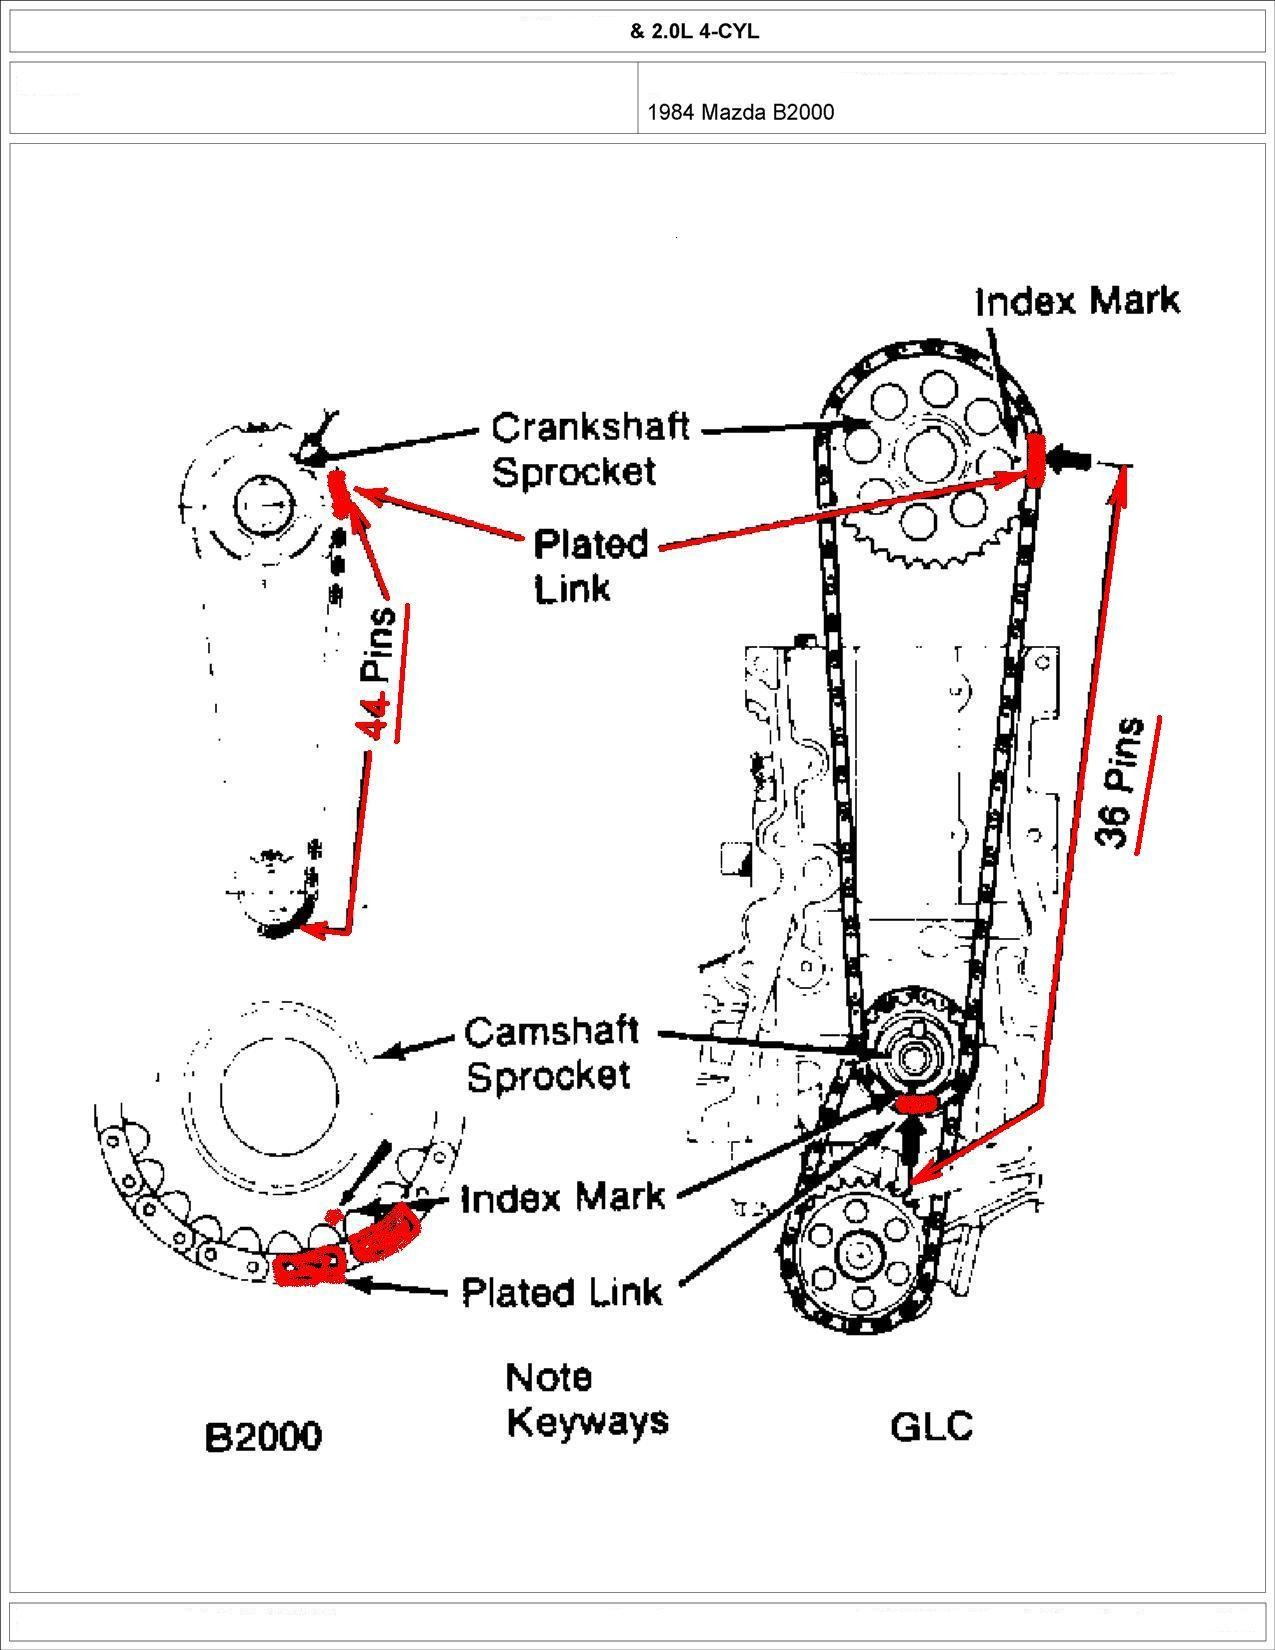 4 Stroke Engine Timing Diagram I Have A 1984 Mazda B2000 Pickup I Recently Remanufactured the Head Of 4 Stroke Engine Timing Diagram